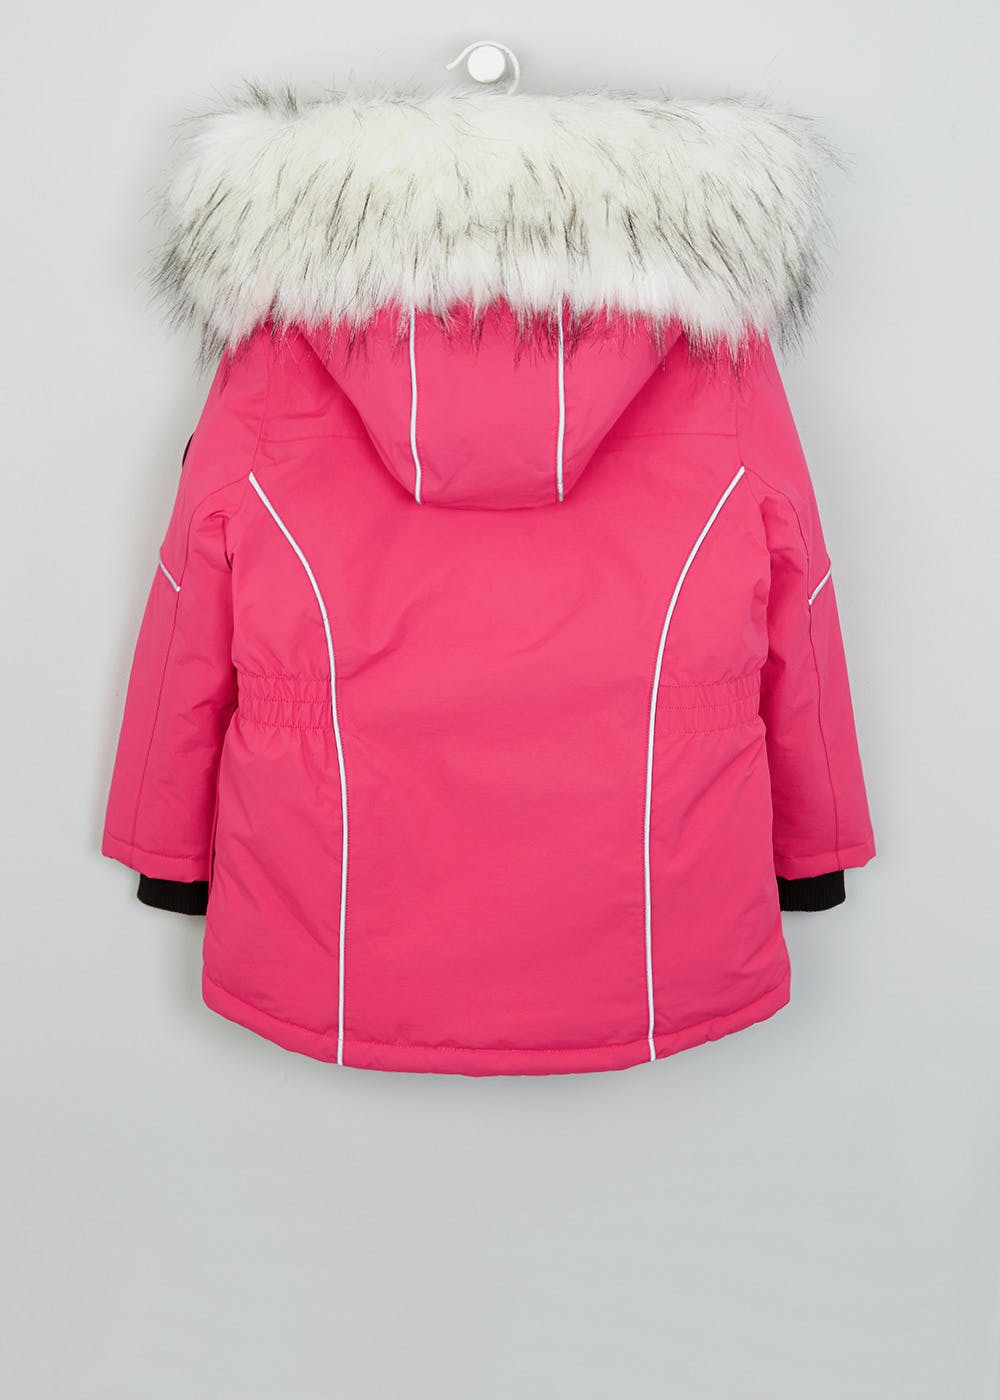 Girls Pink Hooded Jacket (3-13yrs) – Pink – Matalan